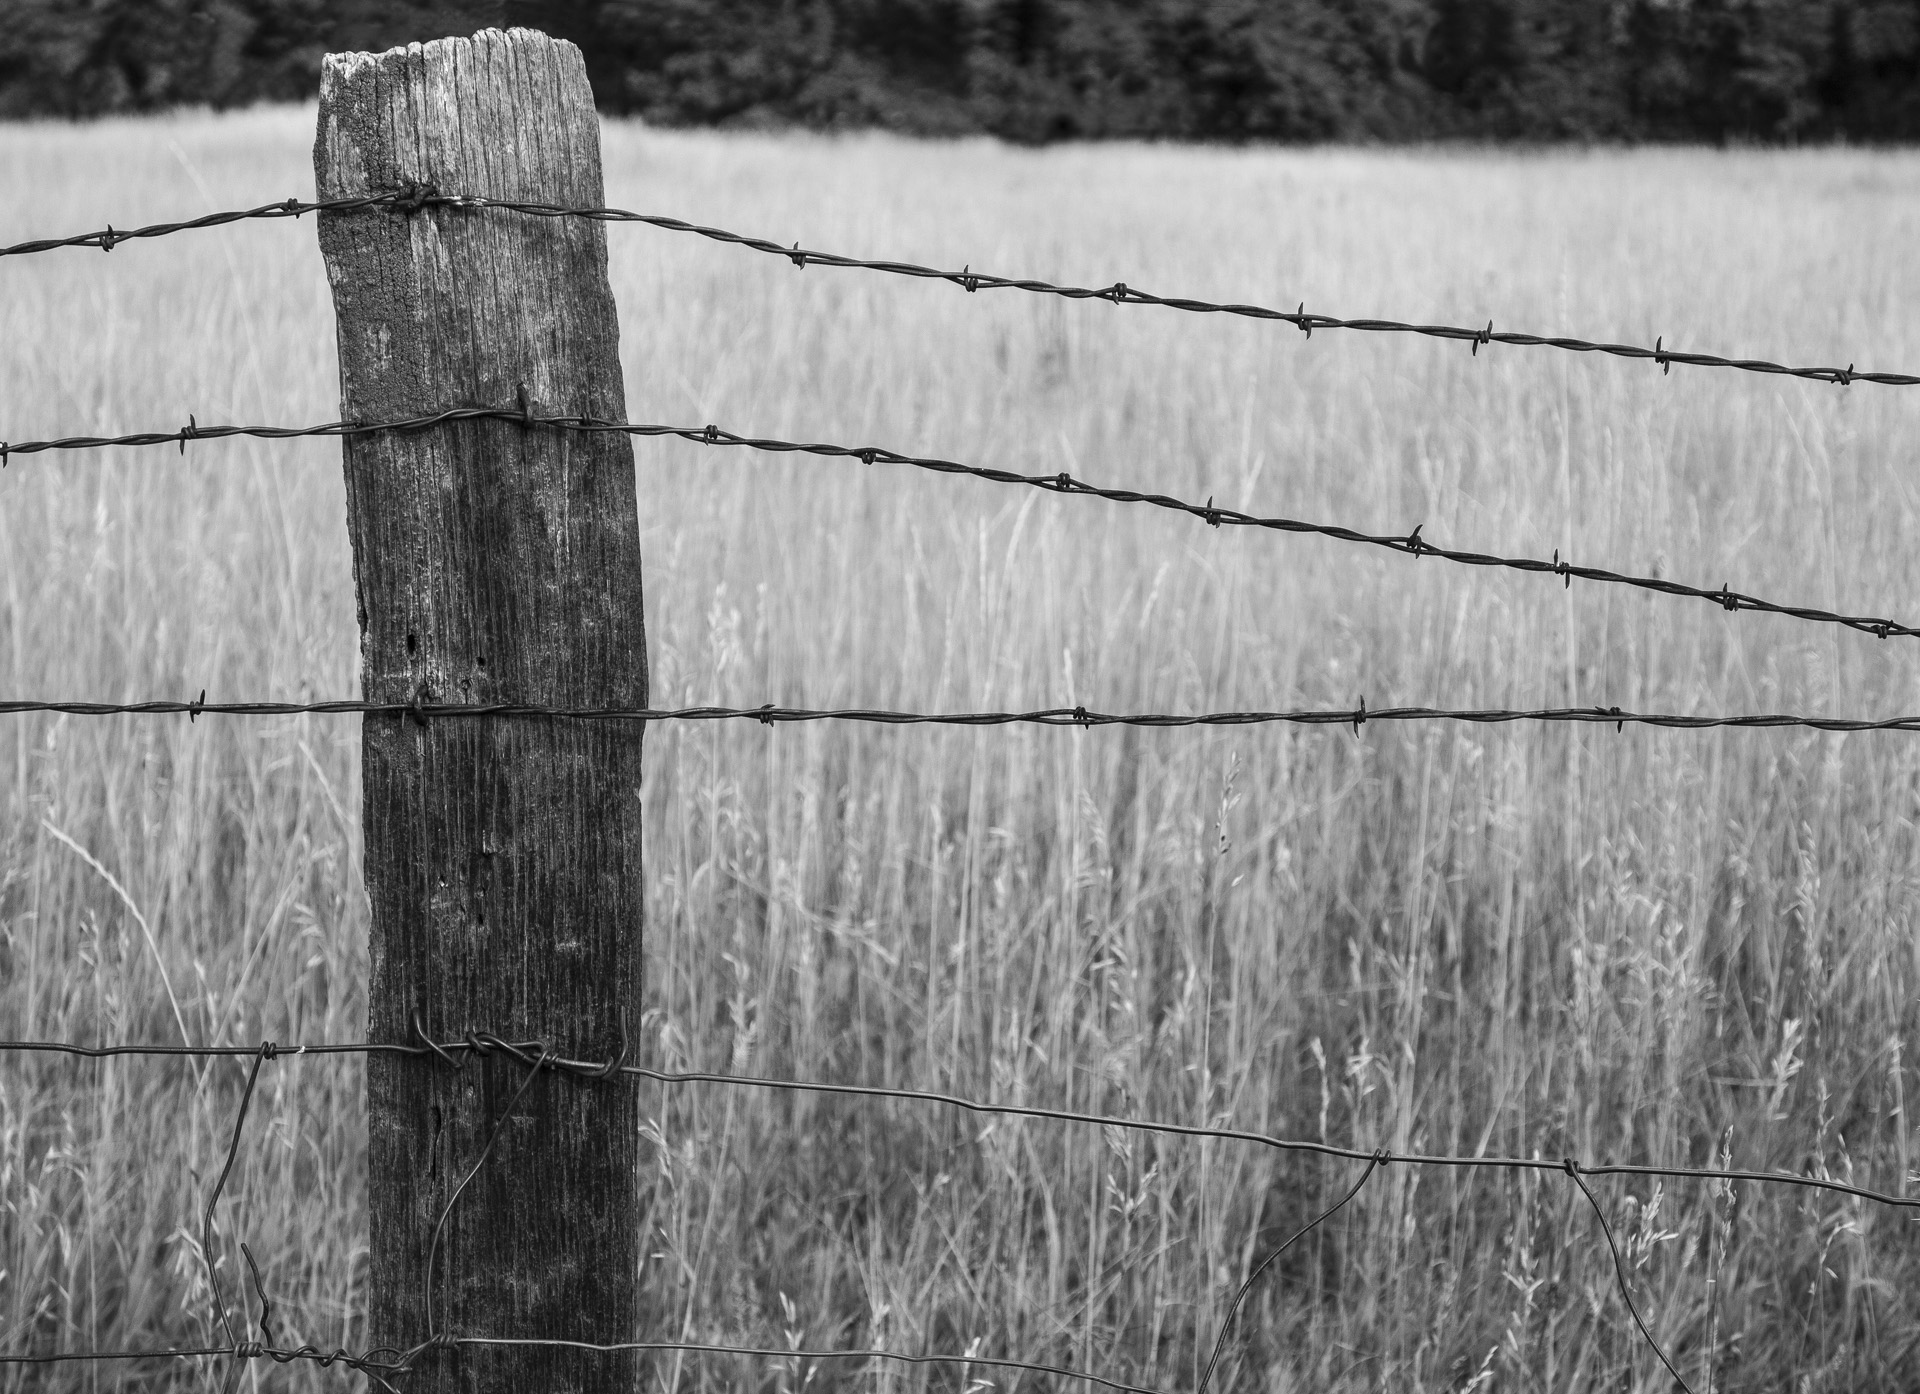 The Old Fence Post - Monochrome Print (Open) - Name Withheld Per Request